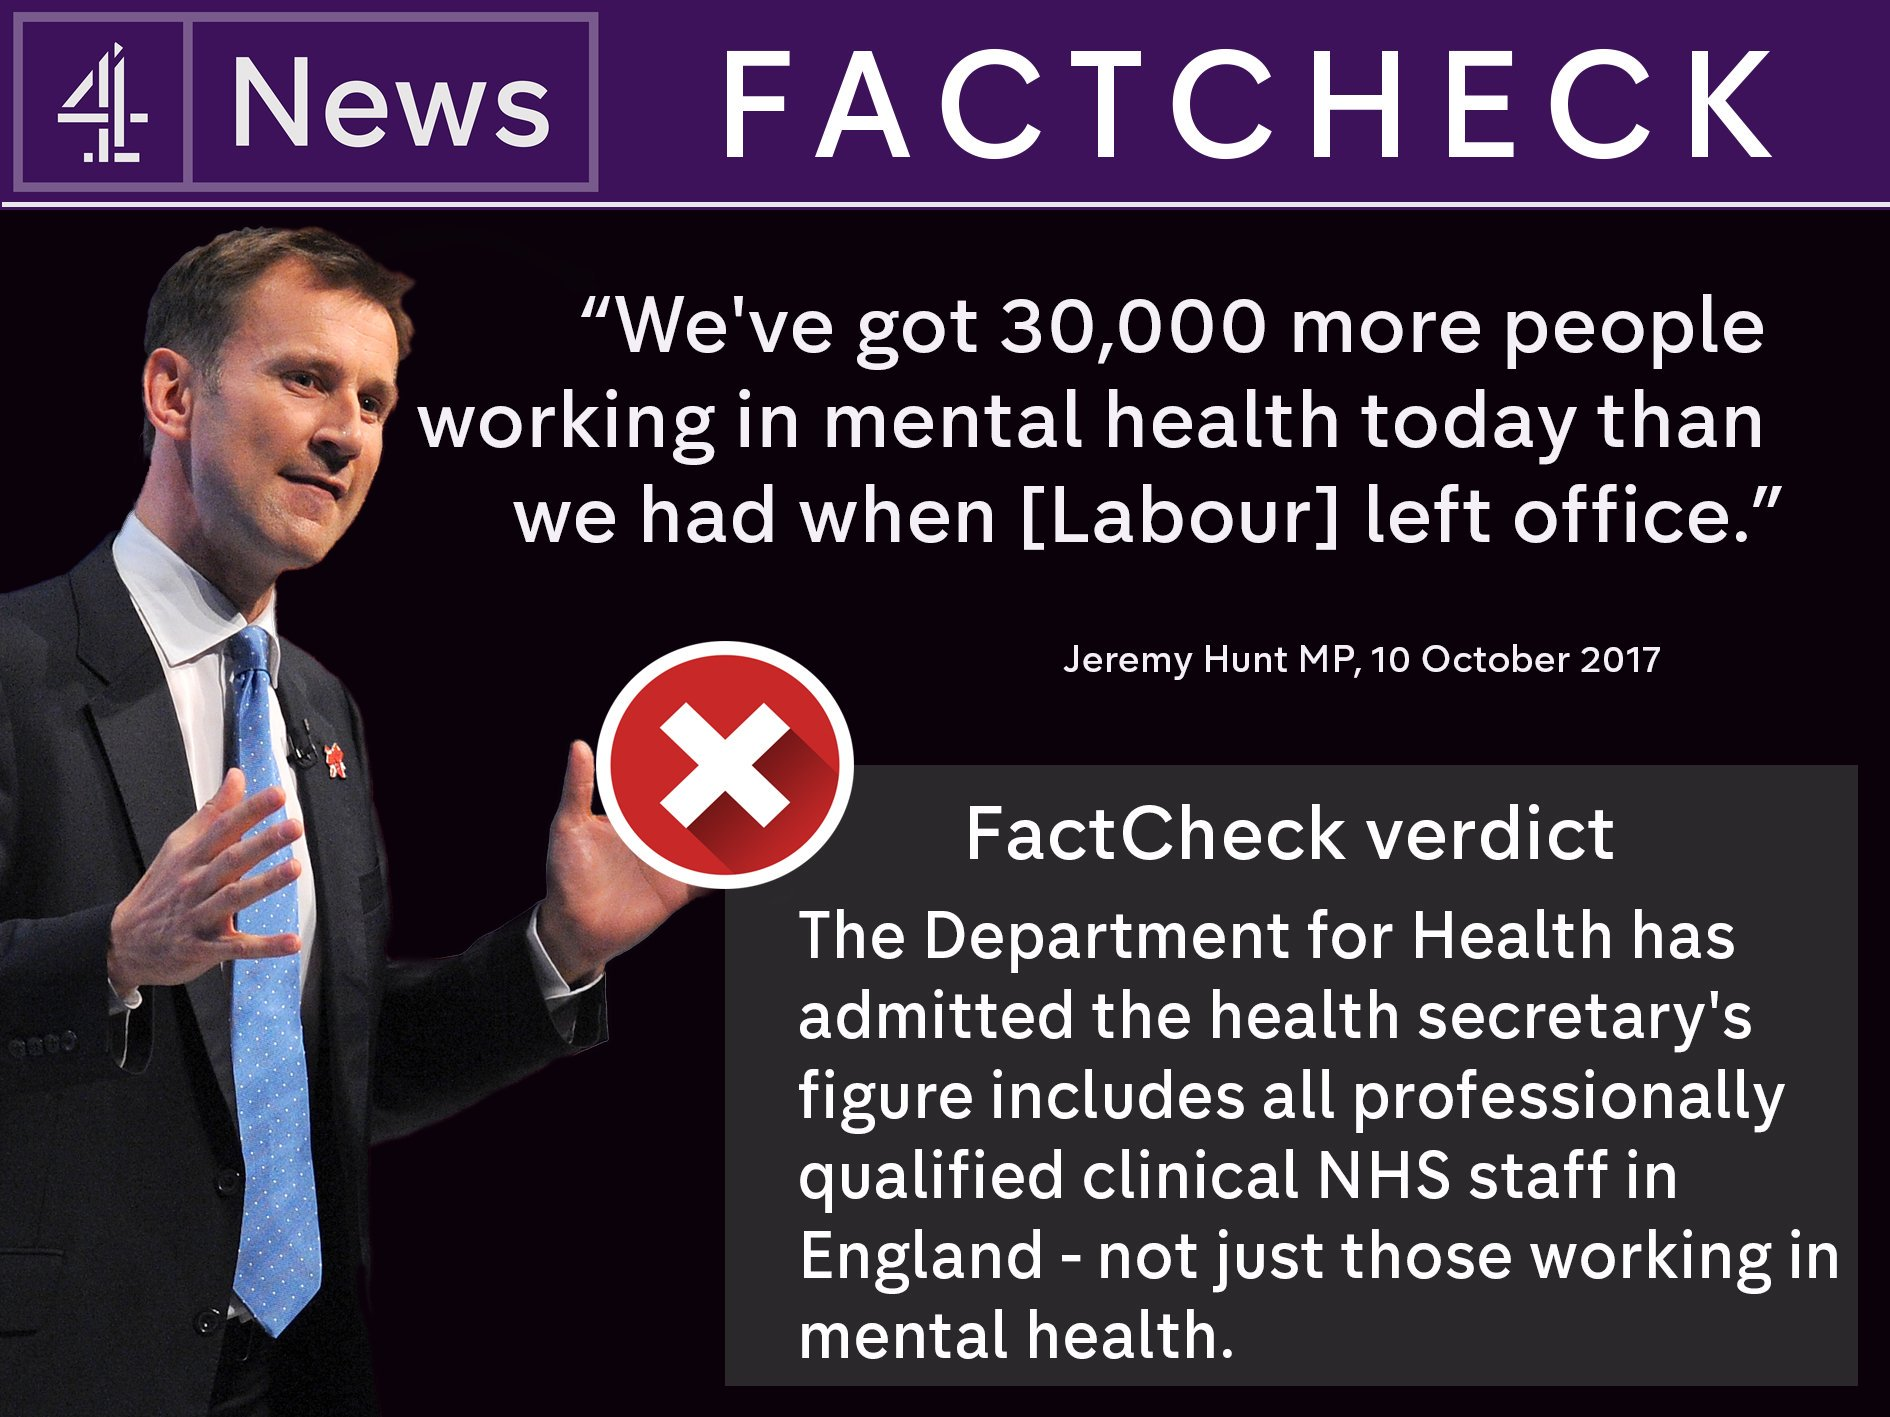 .@Jeremy_Hunt forced to re-write parliamentary records after false claims over mental health - @FactCheck reveals https://t.co/HYUVvQ5pJj